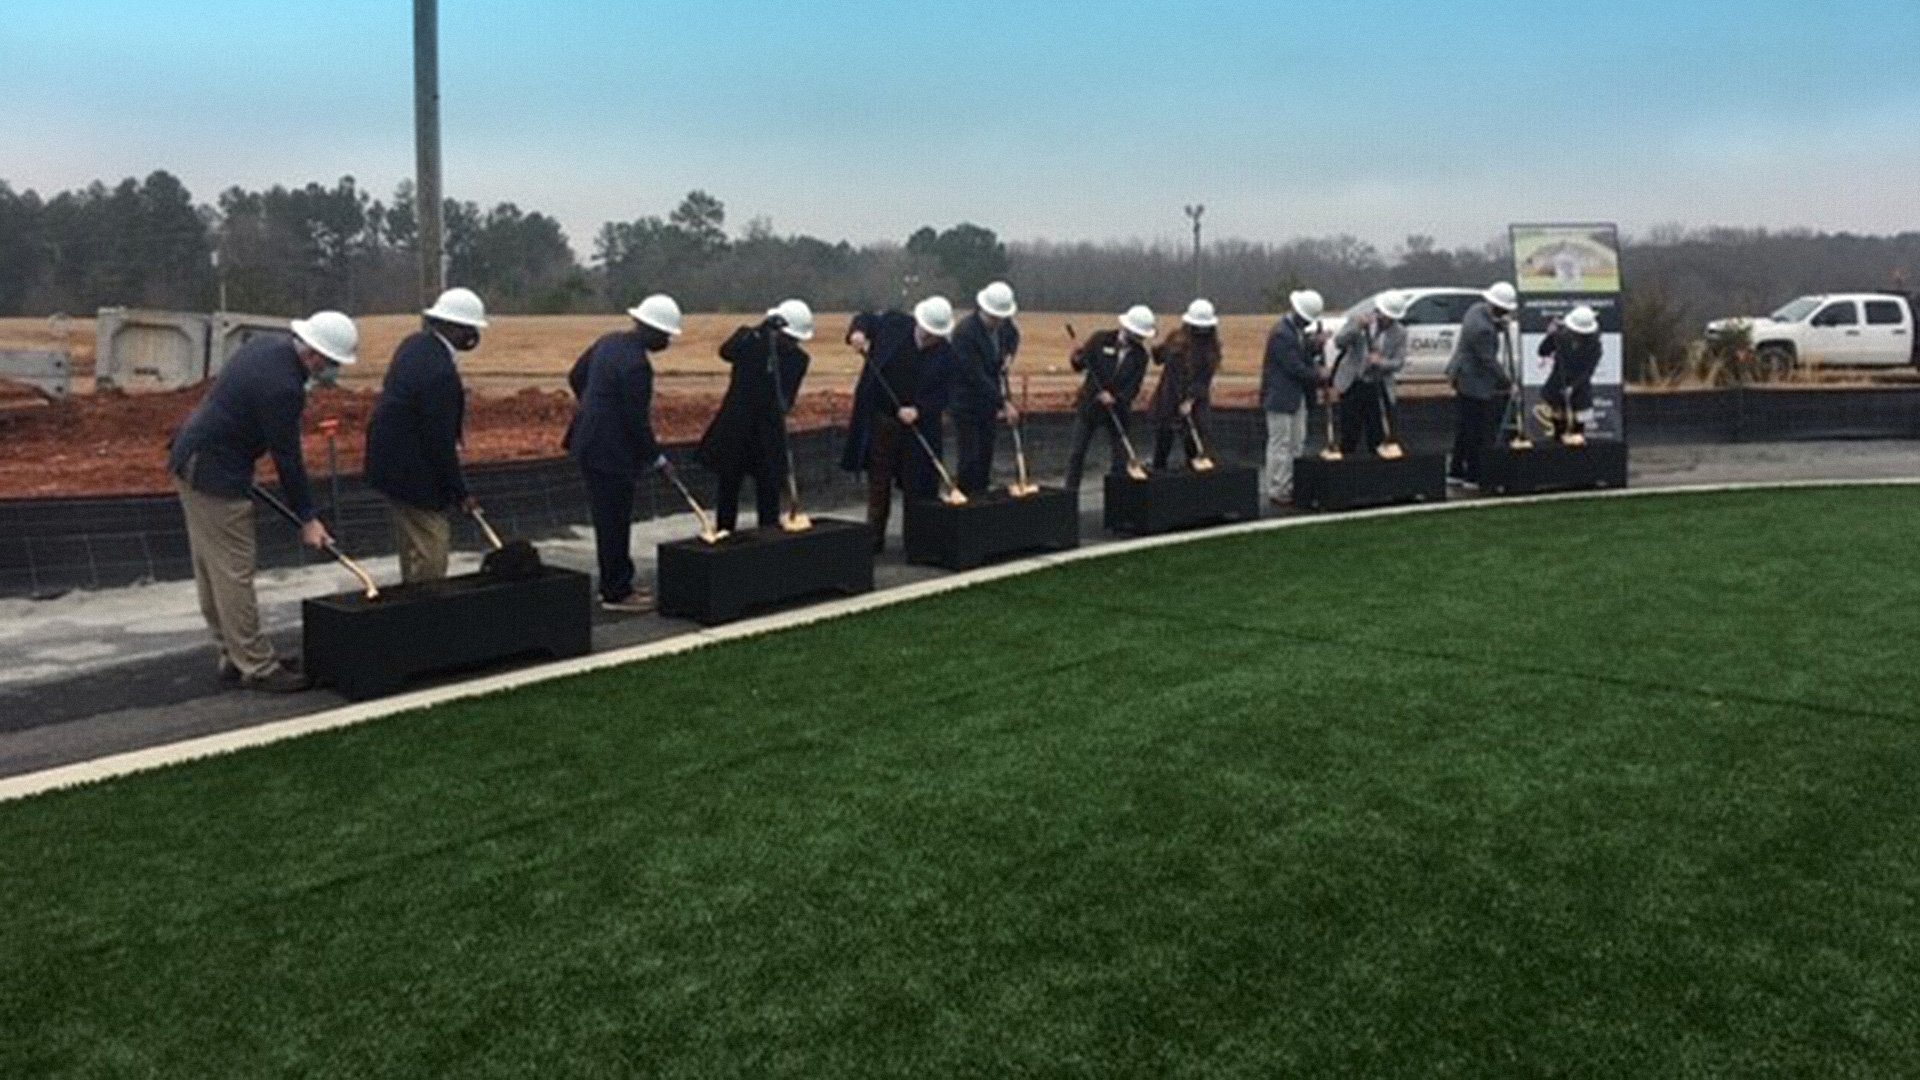 Anderson University Soccer and Lacrosse Field House, Groundbreaking photo